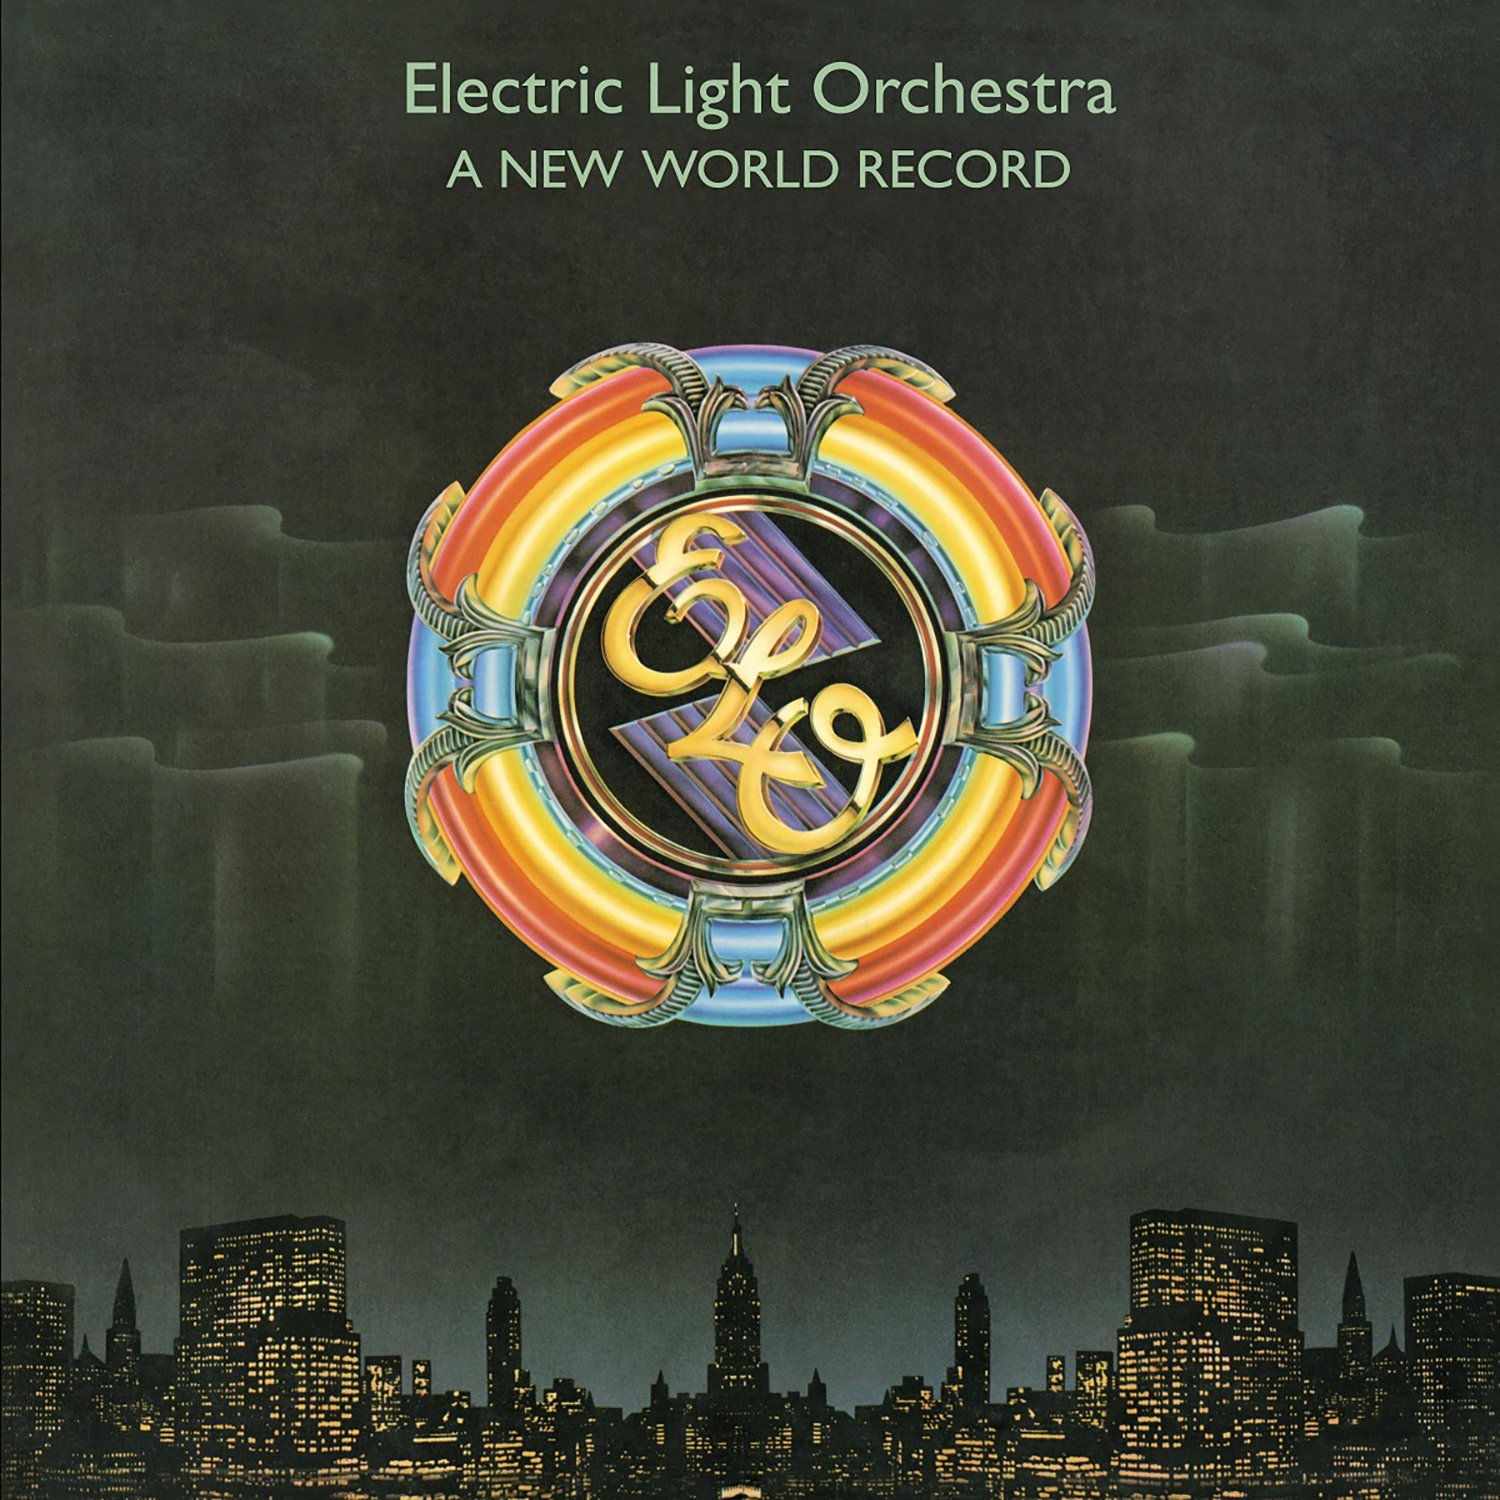 Electric Light Orchestra - A New World Record - Amazon.com Music